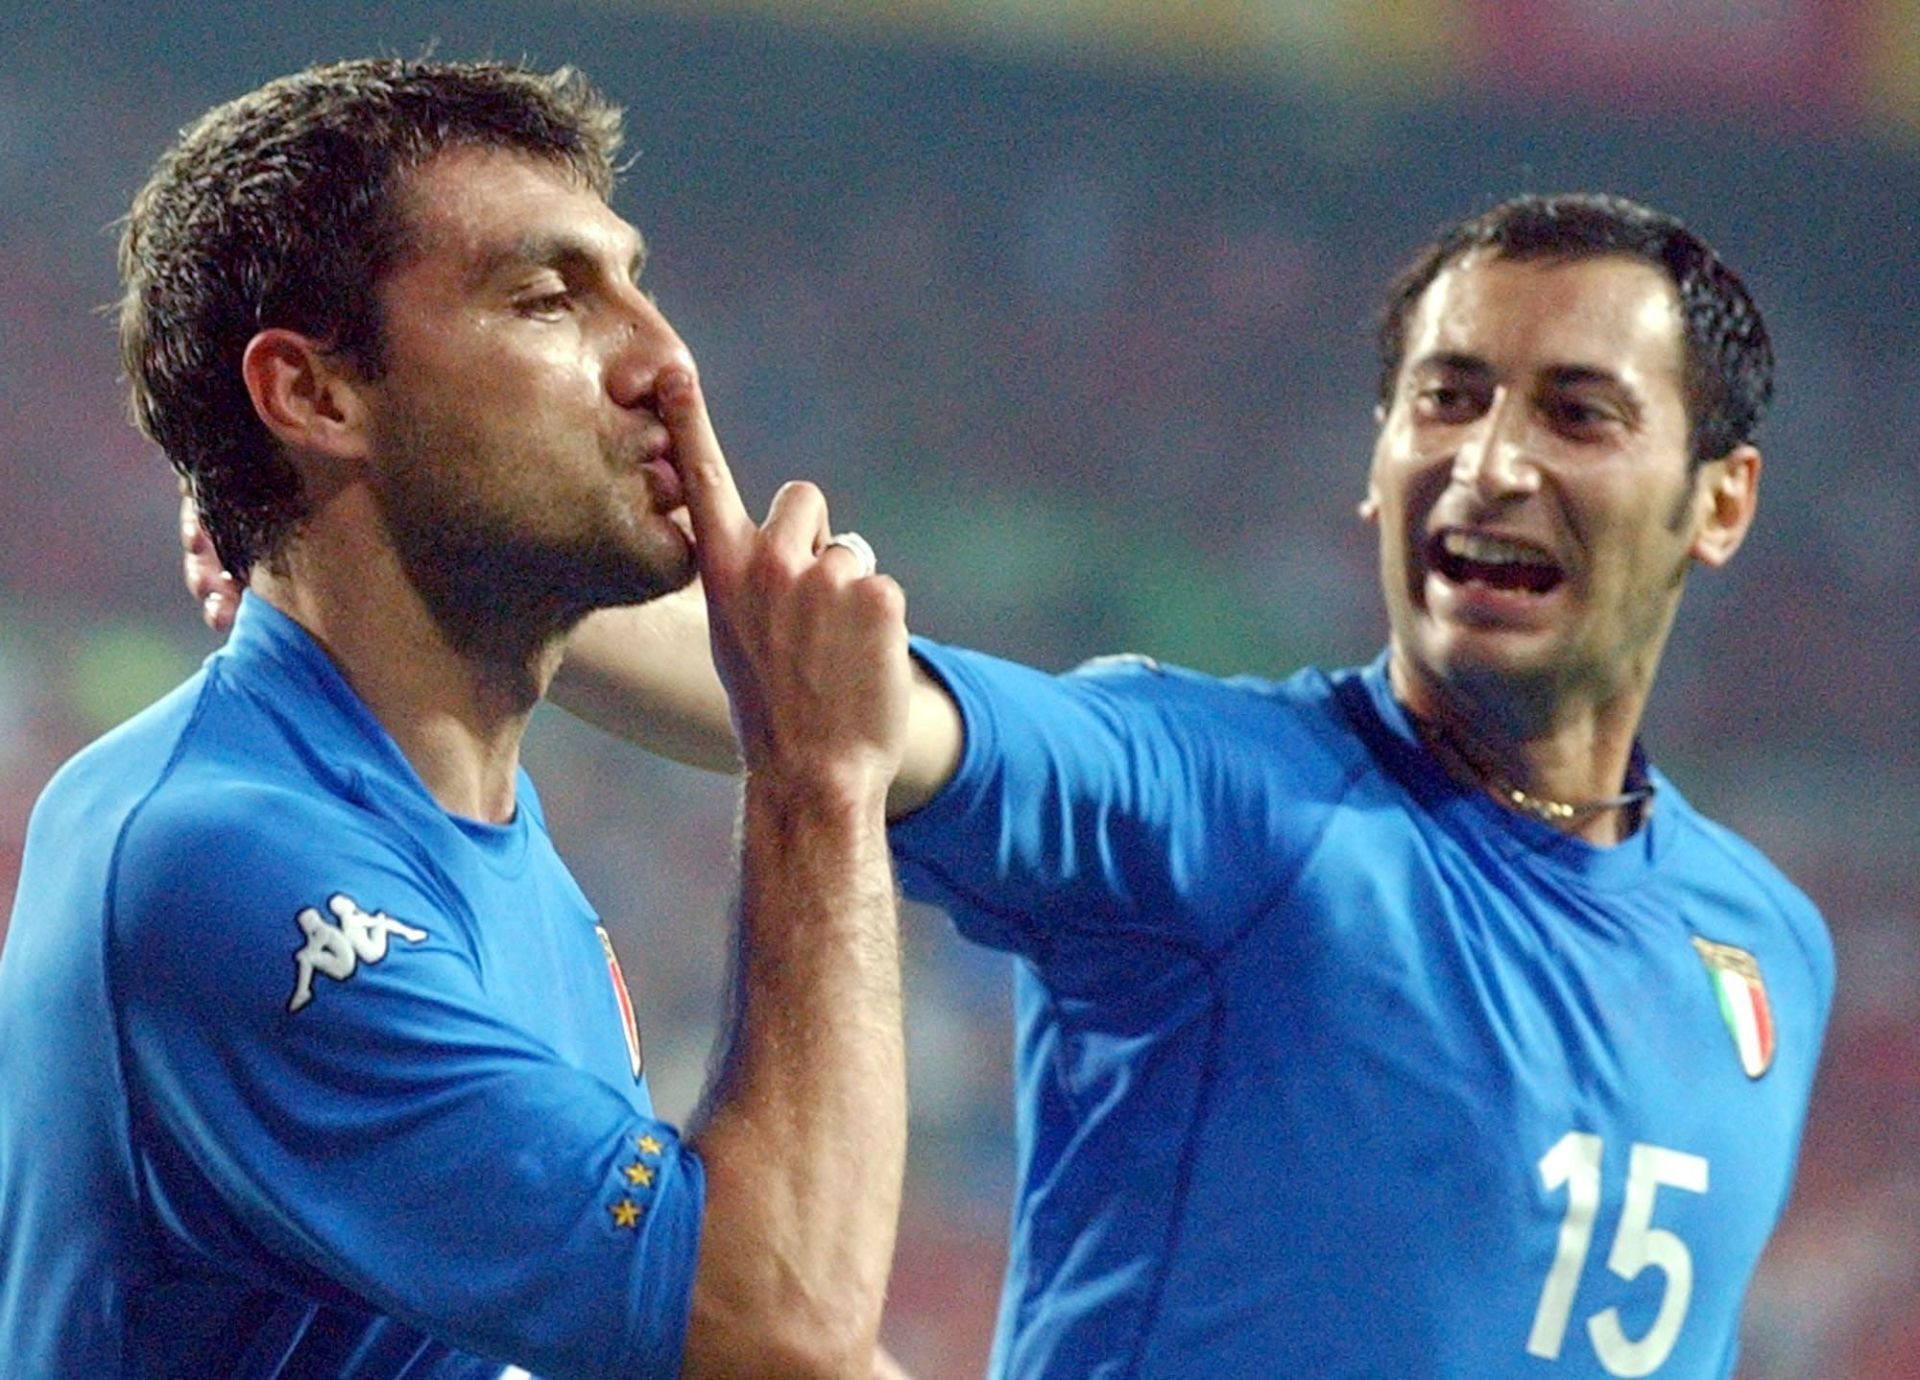 Italian forward Christian Vieri (L) celebrates his goal against South Korea with team-mate Mark Iuliano which gives the Italians a 1-0 lead over the World Cup hosts. However, South Korea sensationally wins their World Cup round of 16 match against heavily favoured Italy on 18 June 2002 in Daejeon with a golden goal by a final score of 2-1. The game was tied 1-1 after regulation. (Credit Image: © DPA/ZUMA Press) PILKA NOZNA MISTRZOSTWA SWIATA KOREA POLUDNIOWA - WLOCHY FOT. ZUMA/NEWSPIX.PL POLAND ONLY! --- Newspix.pl *** Local Caption *** www.newspix.pl mail us: info@newspix.pl call us: 0048 022 23 22 222 --- Polish Picture Agency by Ringier Axel Springer Poland